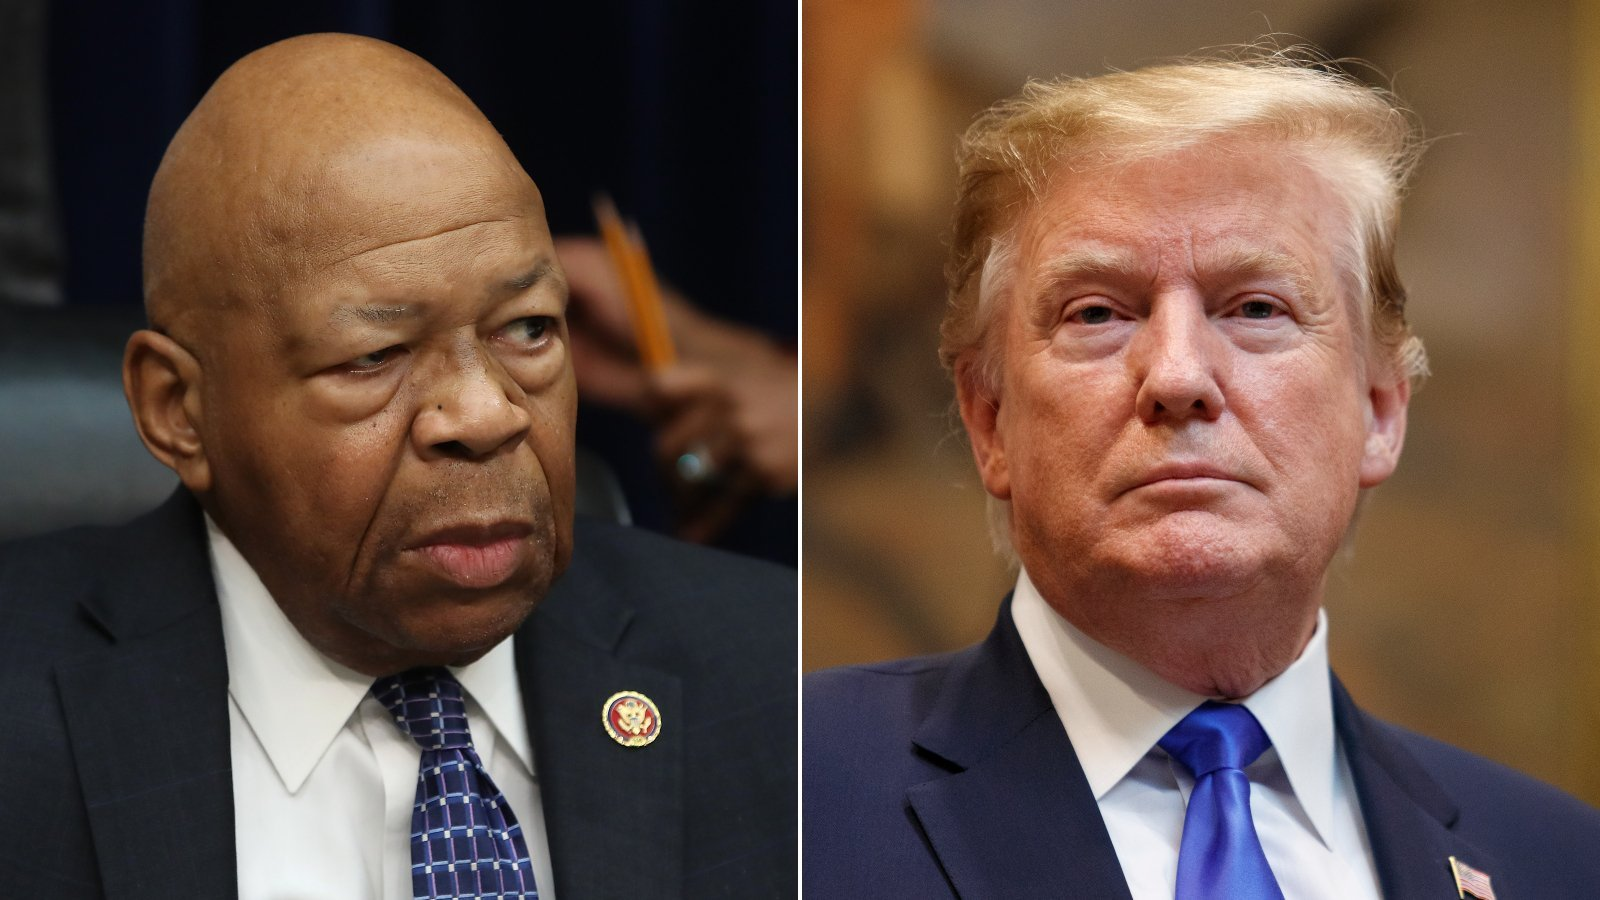 Oversight Chairman Cummings asks if DOJ guidelines kept Trump from being prosecuted